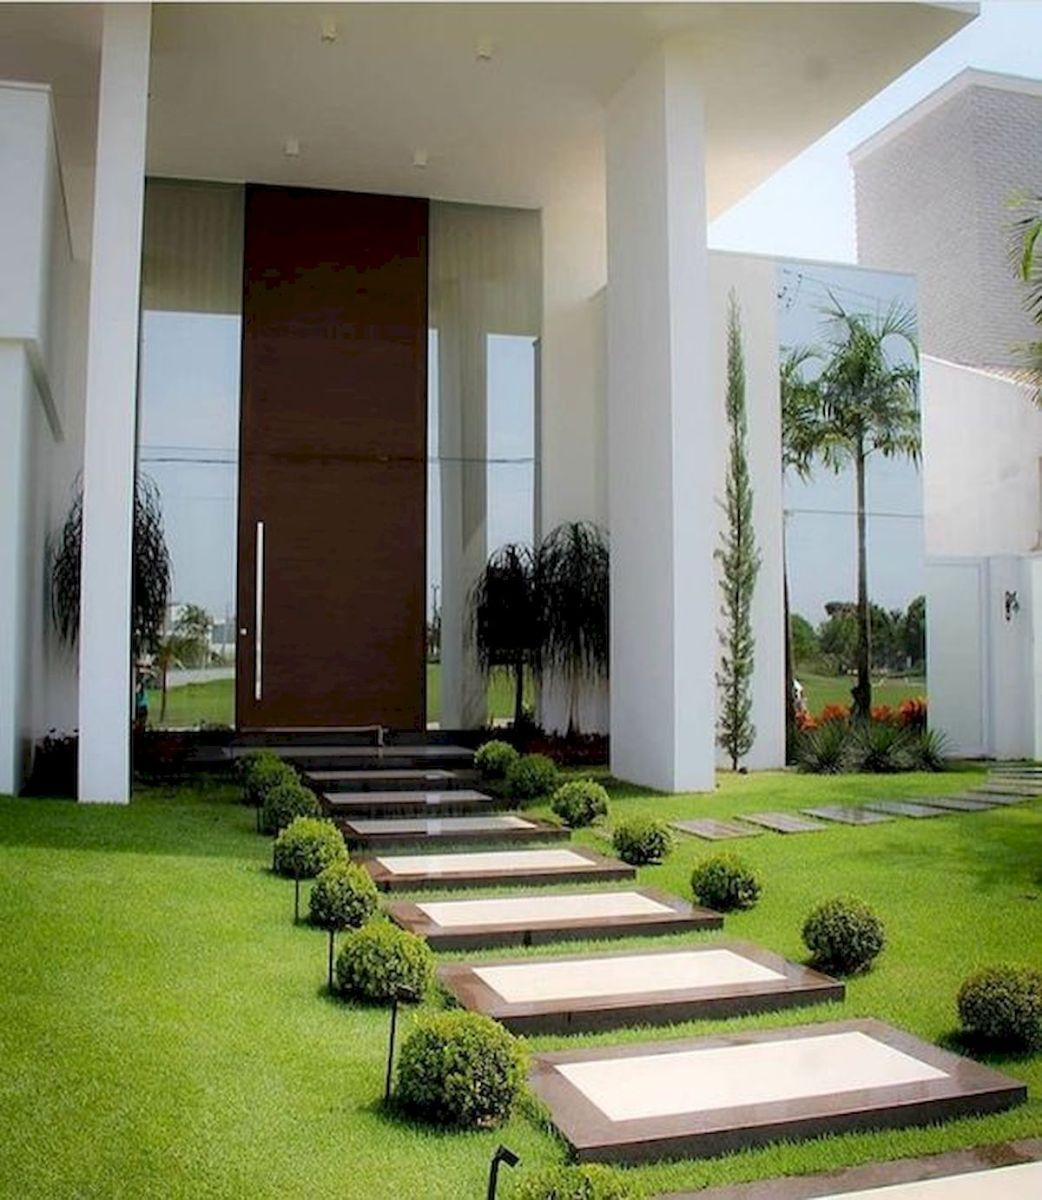 90 simple and beautiful front yard landscaping ideas on a on modern front yard landscaping ideas id=95678